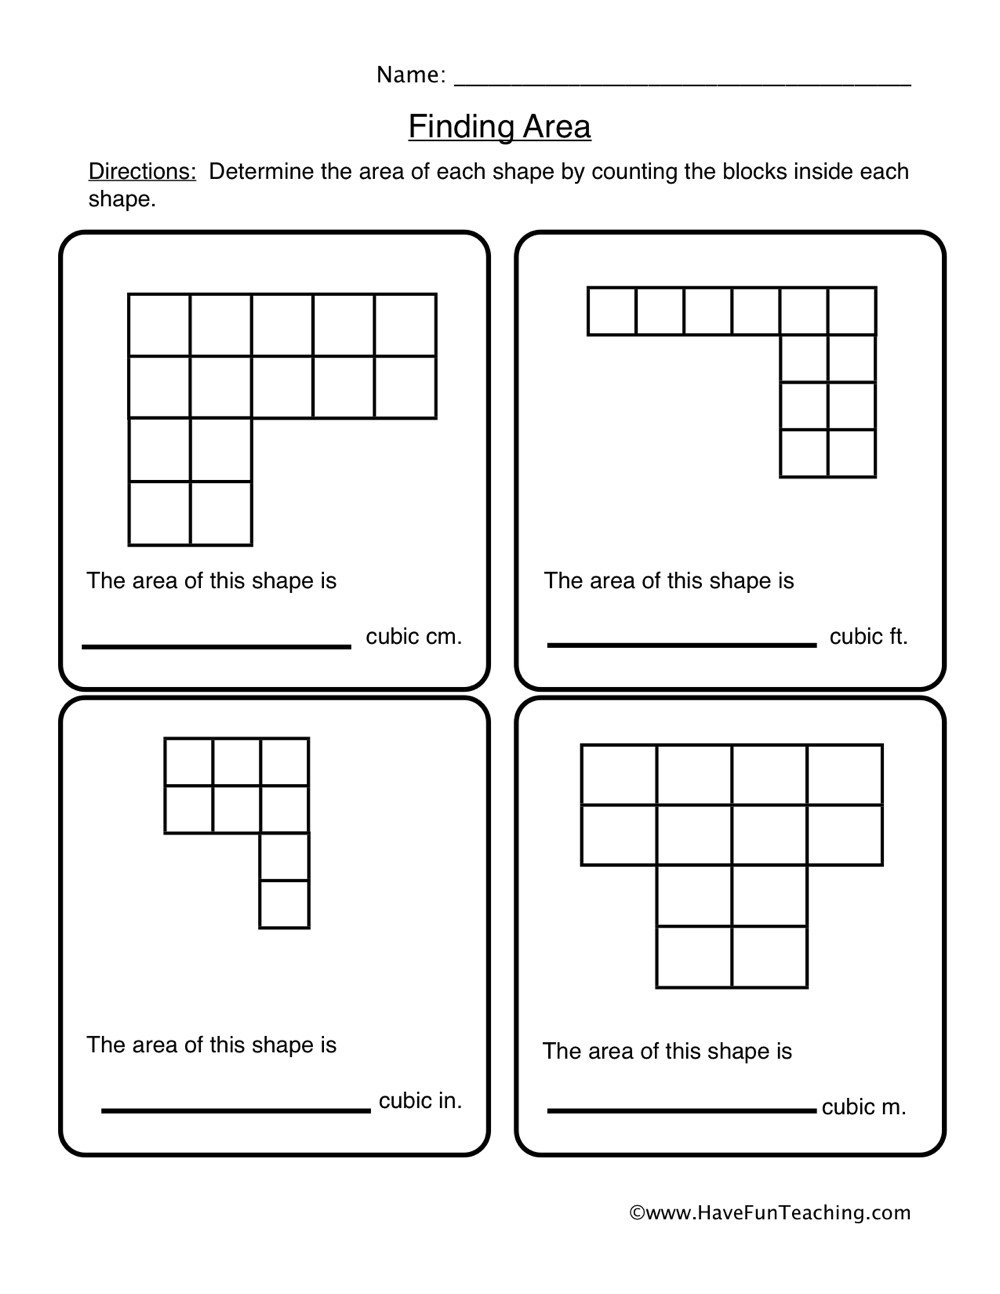 Area Irregular Shapes Worksheet Finding area Of Irregular Shapes Worksheet